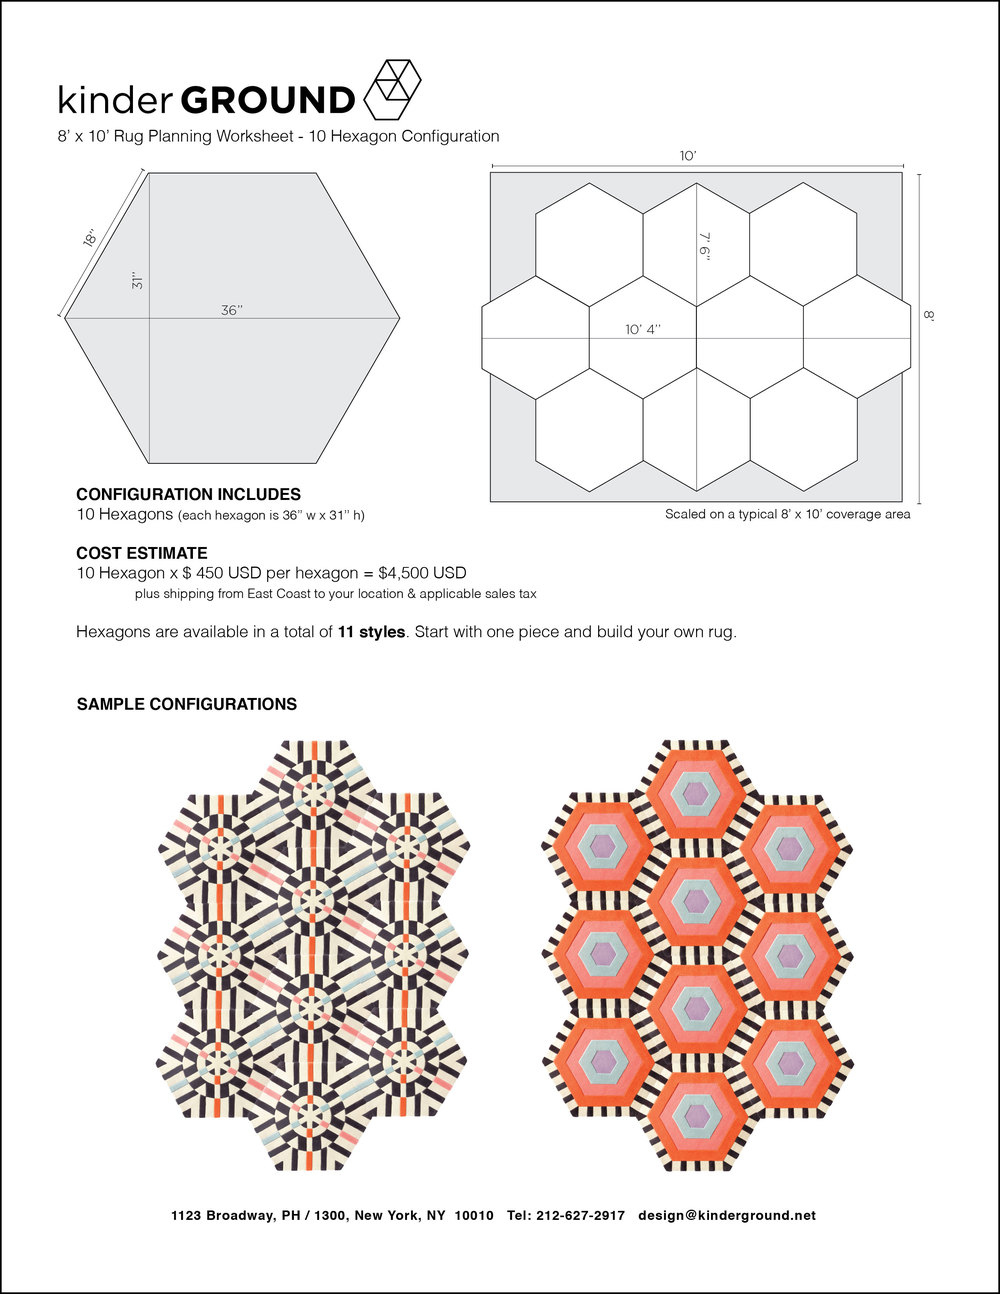 10-Hexagon Configuration